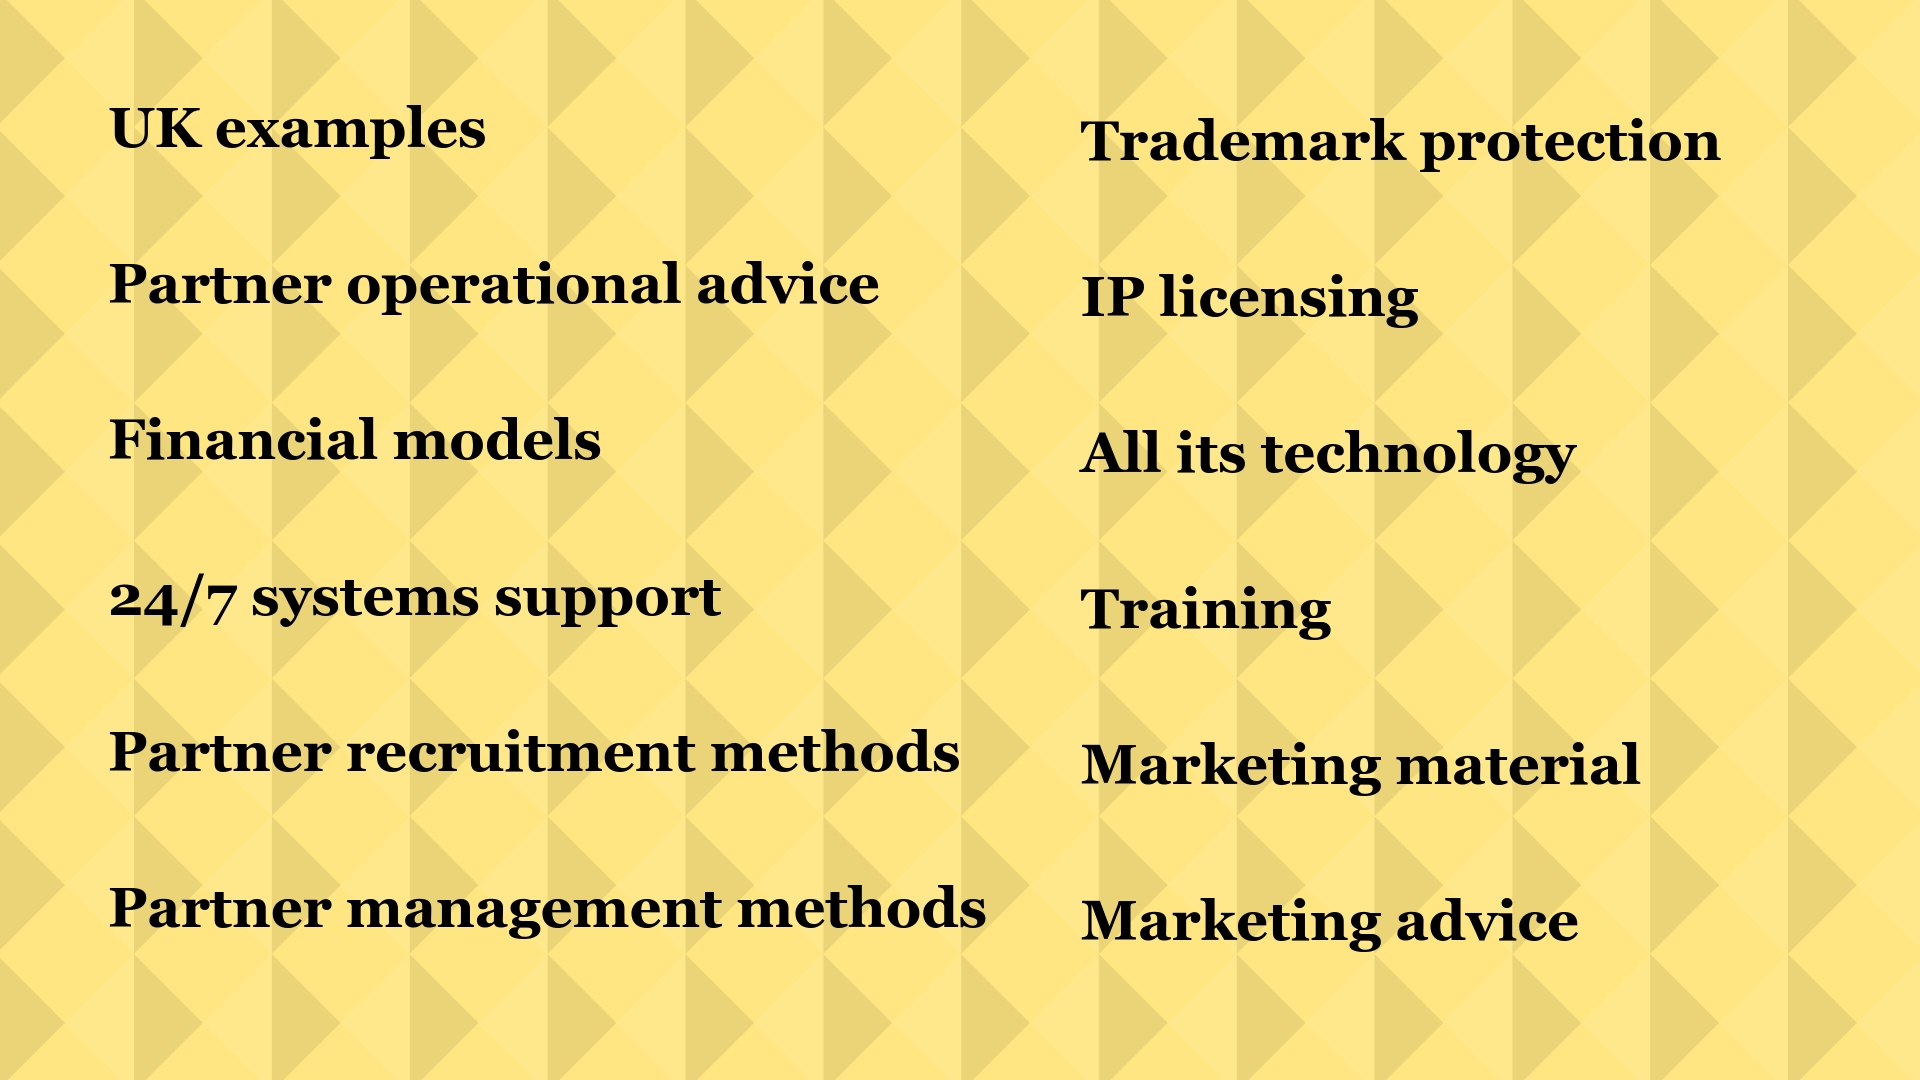 · Trademark protection · IP licensing · All its technology · Training · Marketing material · Marketing advice · UK examples · Partner operational advice · Financial models · 24_7 systems support · Partner recruitme.jpg